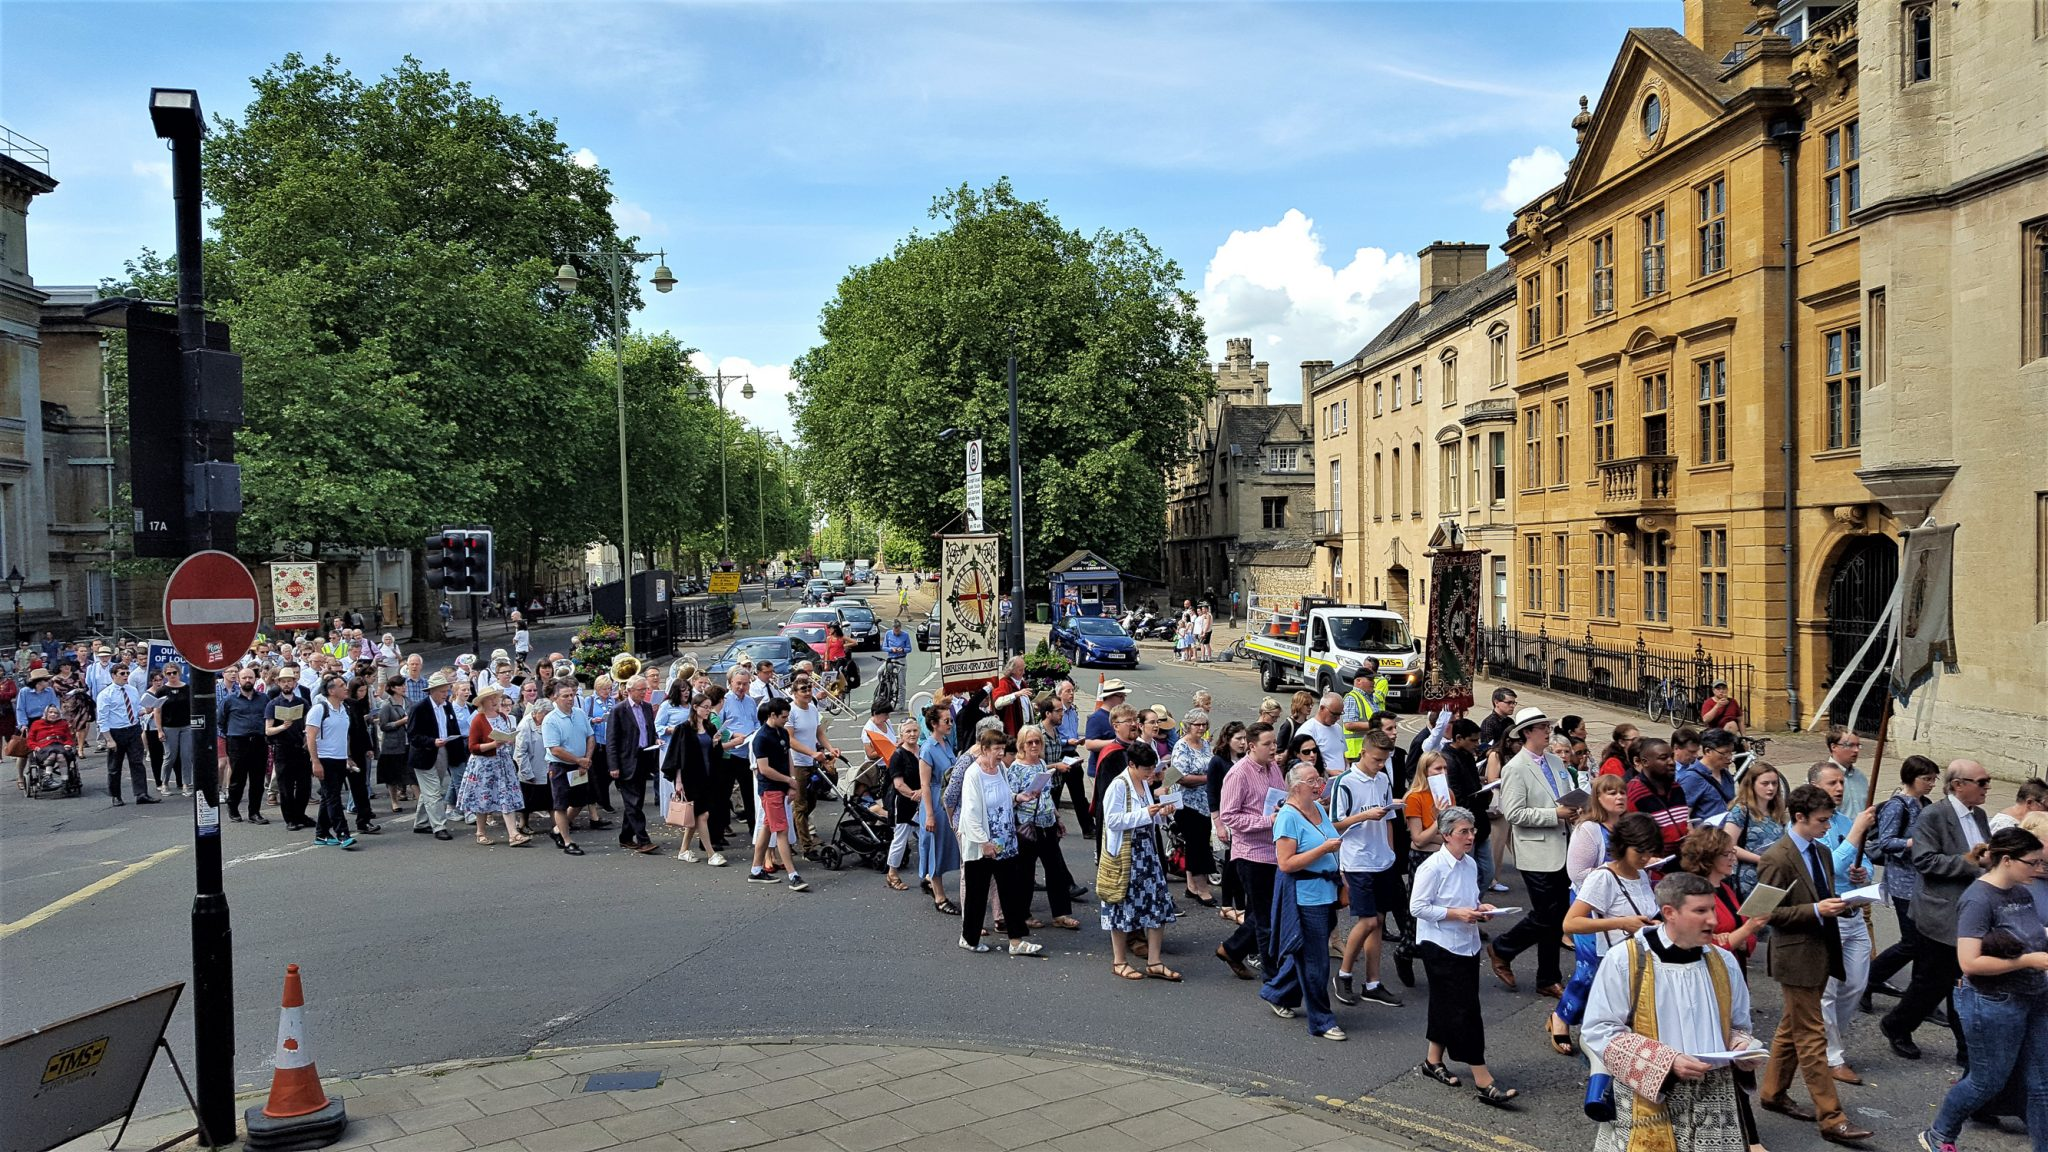 Oxford Celebrates Corpus Christi: Food for the Journey